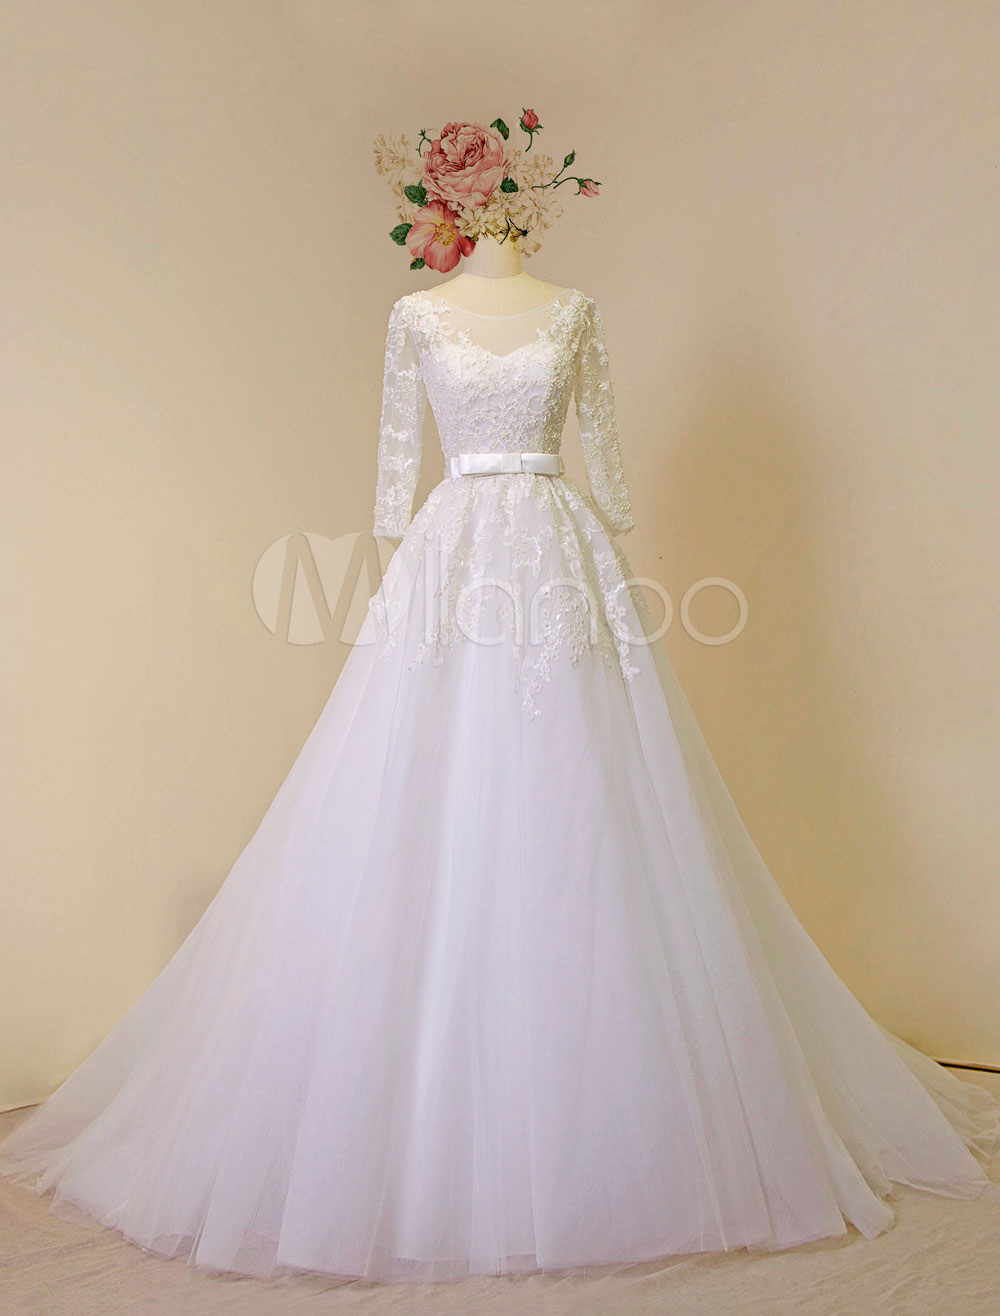 Lace Wedding Dress Long Sleeves Tulle Bridal Gown Chapel Train Lace Applique Beading Backless A-line Luxury Bridal Dress